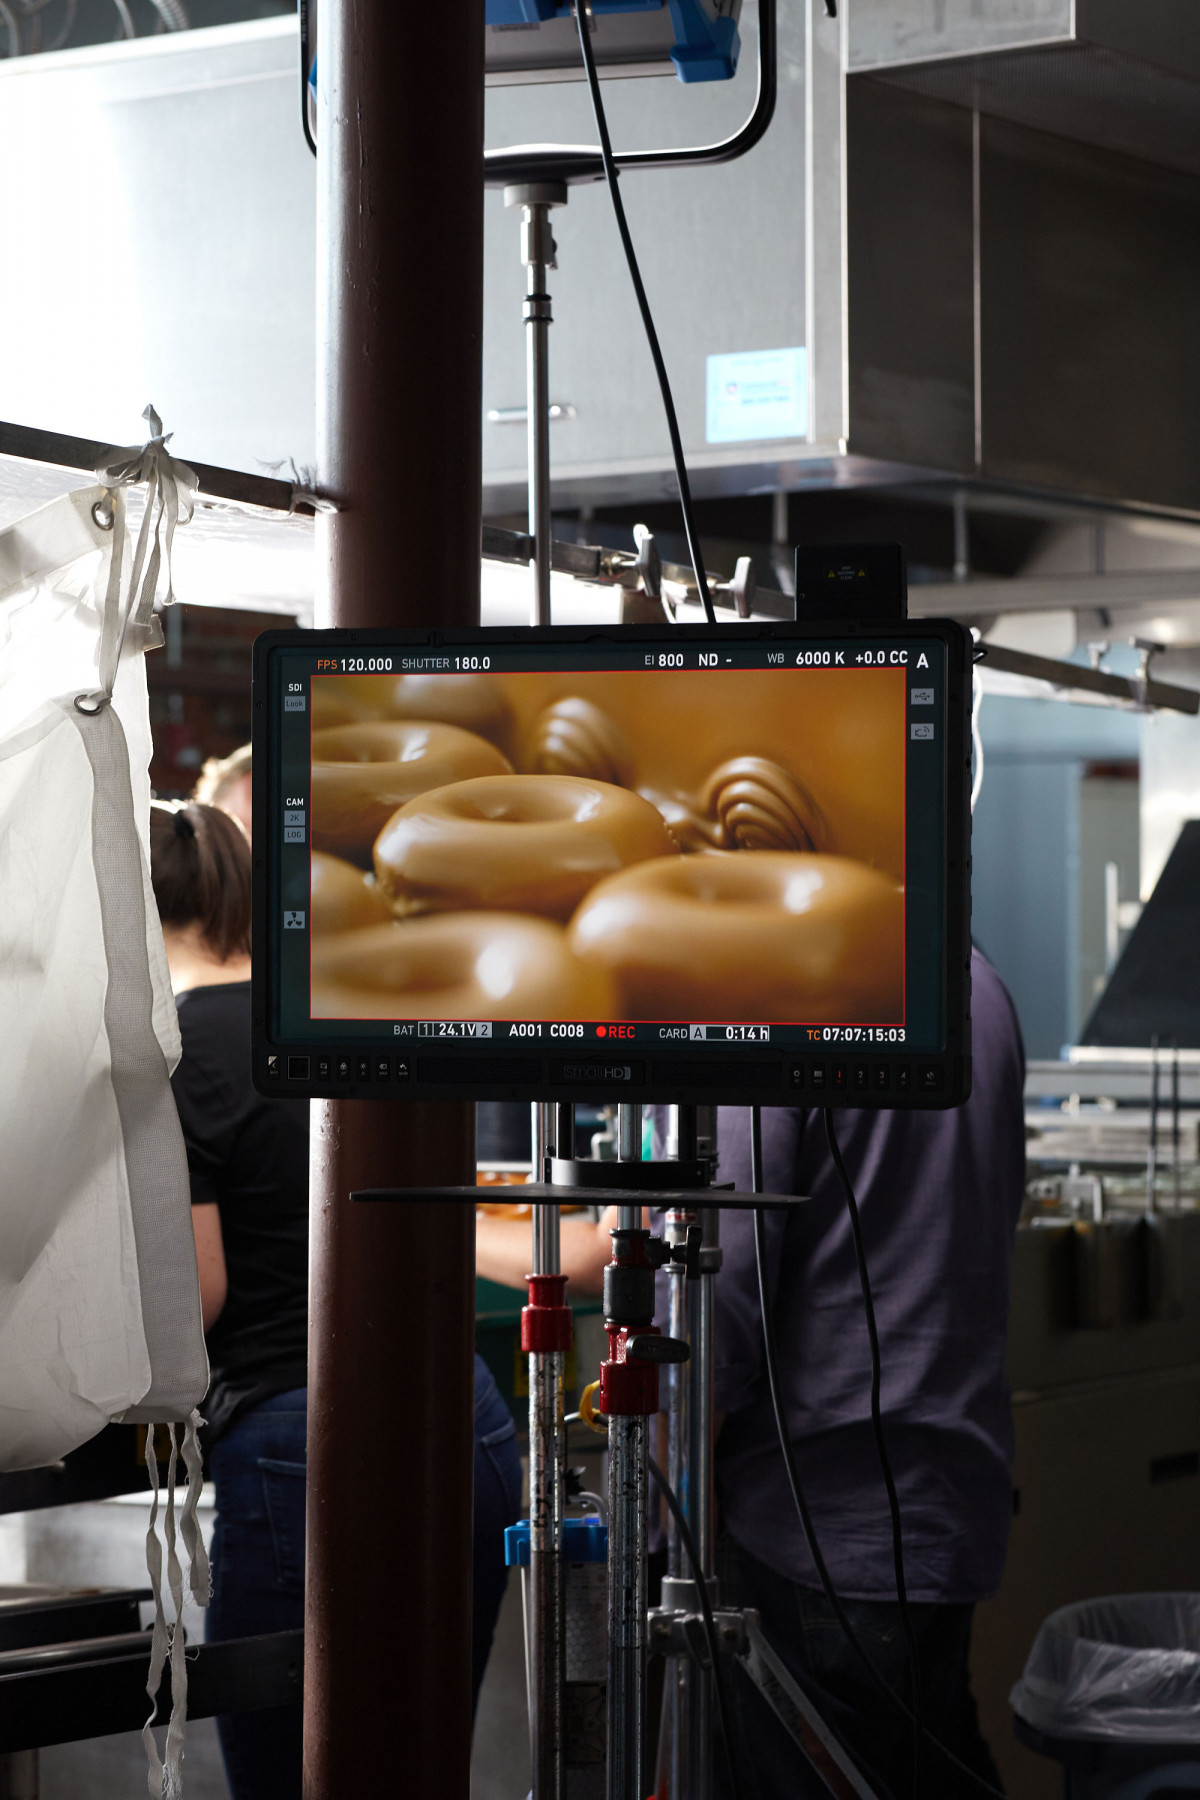 Behind the scenes on a professional food photography shoot showing digital display of doughnuts being photographed